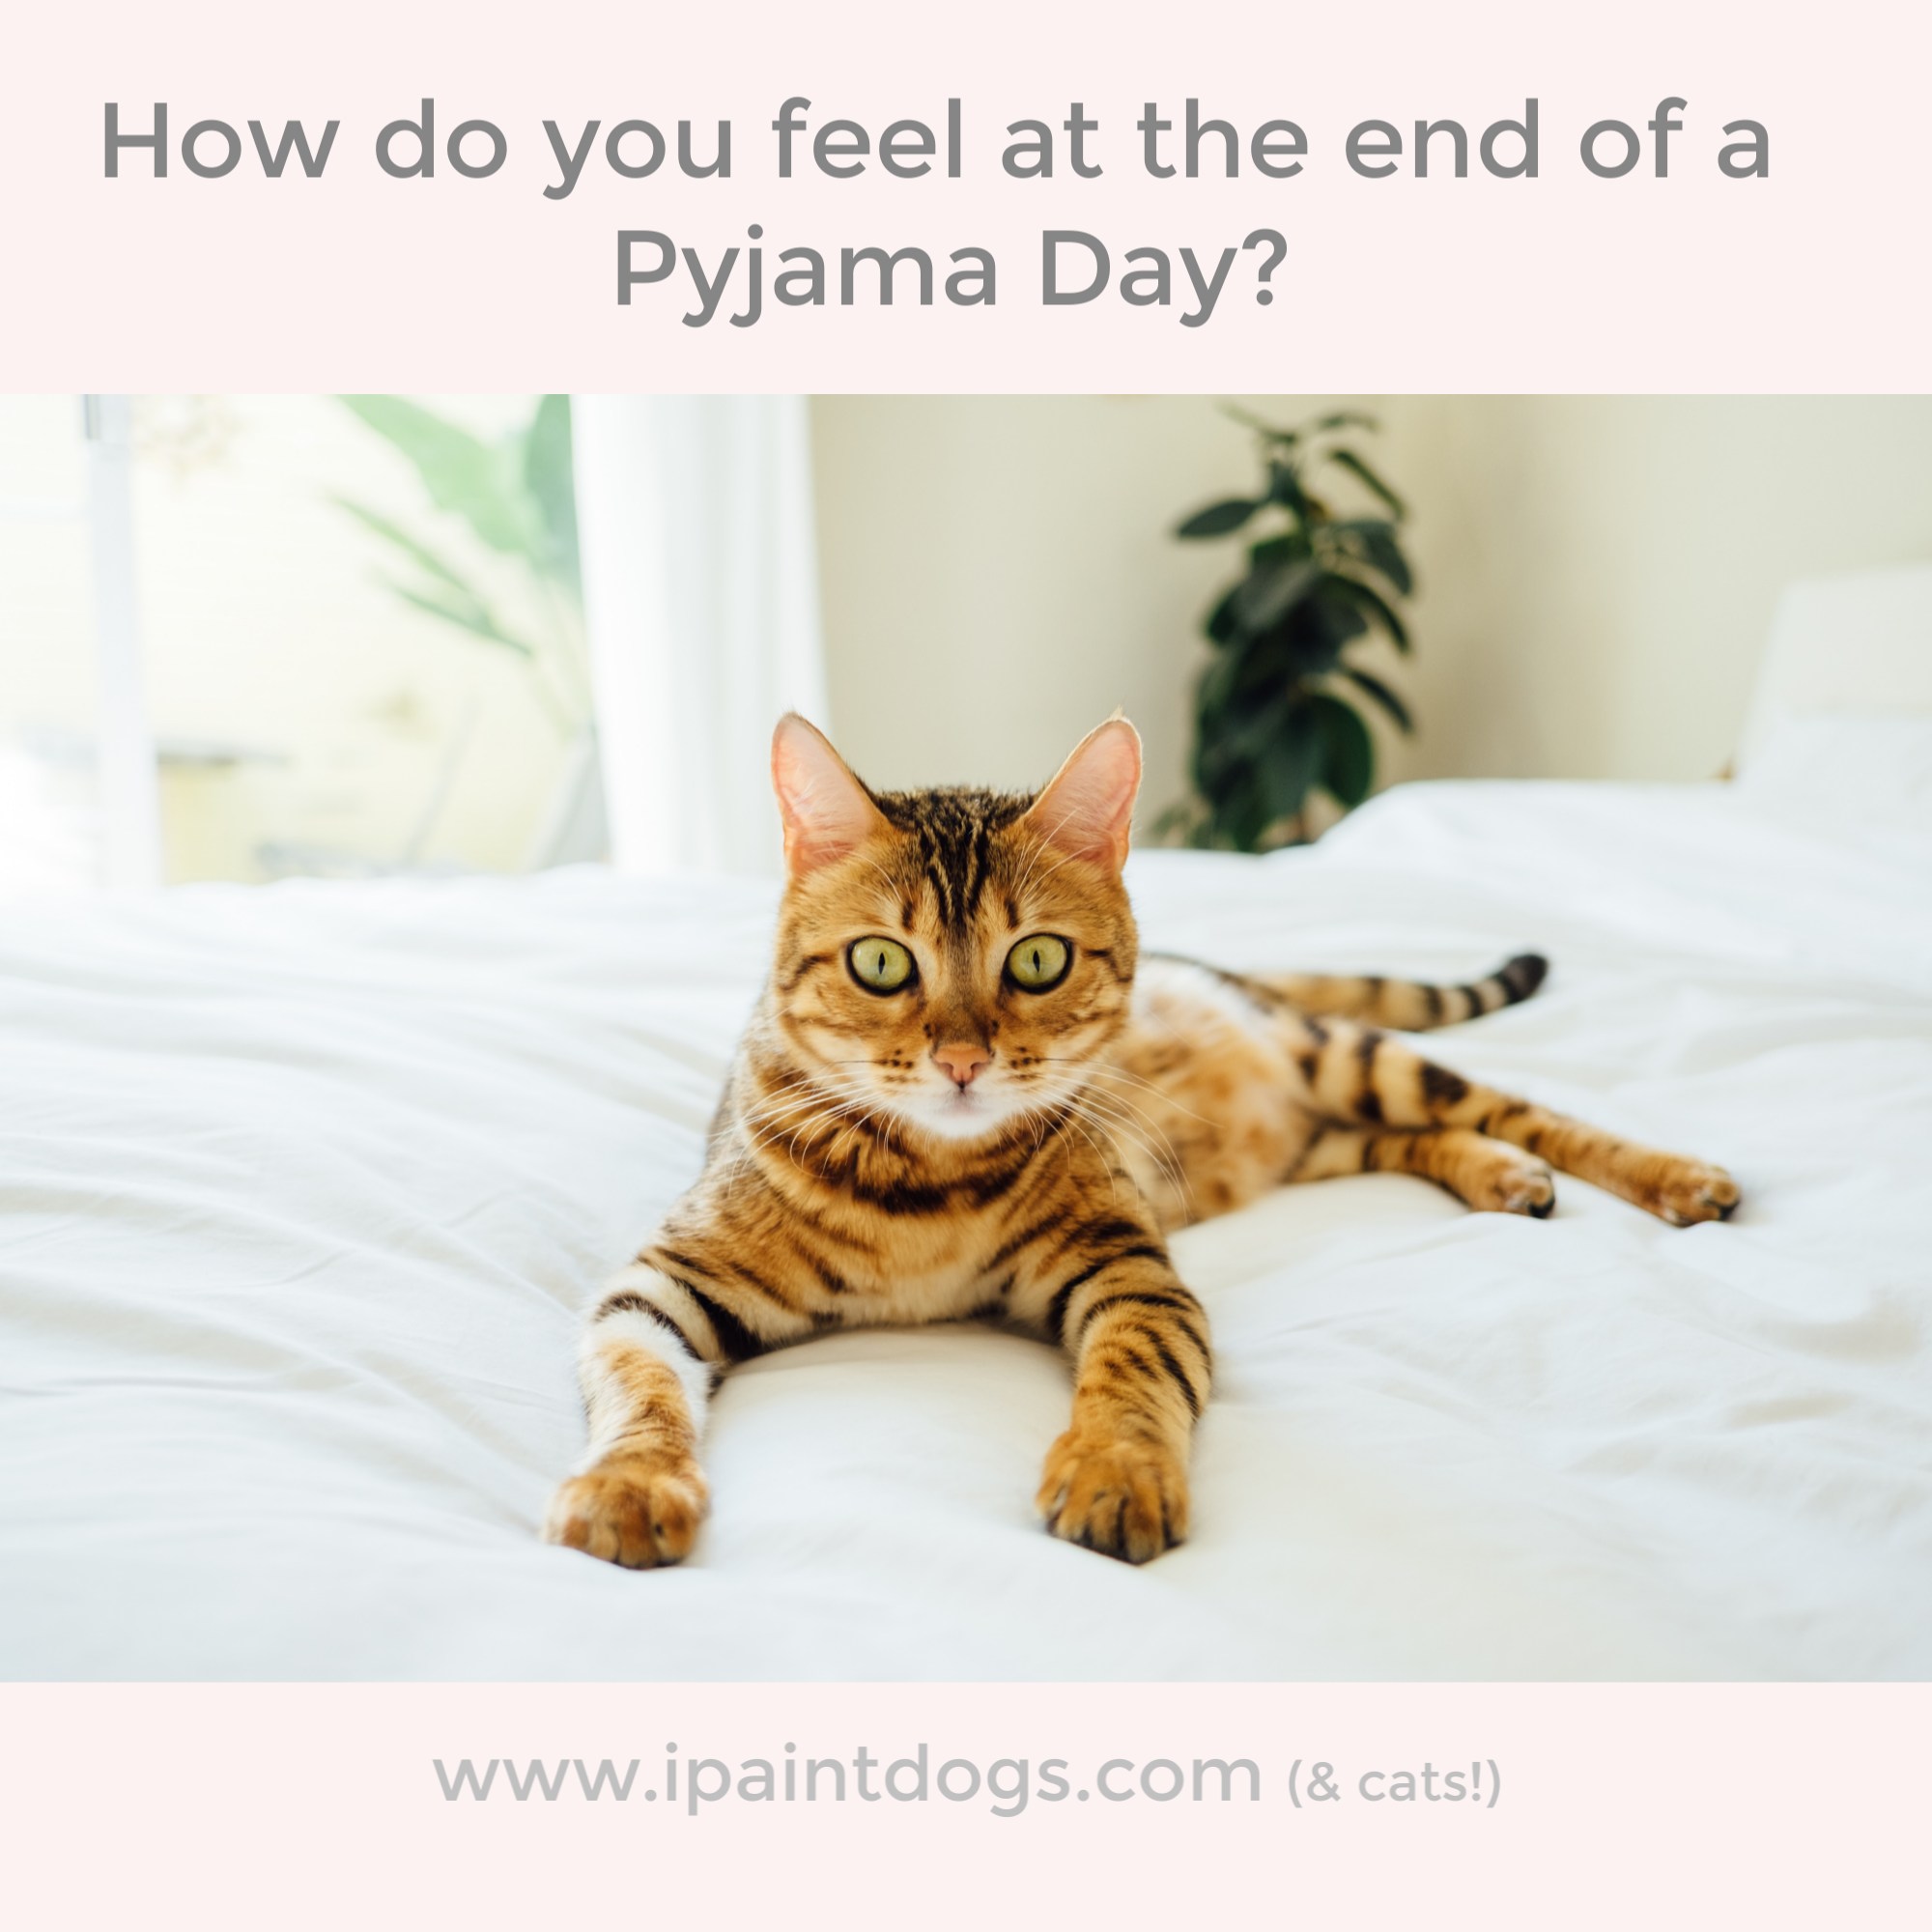 How do you feel at the end of a pyjama day?  samantha barnes is ipaintdogs.com